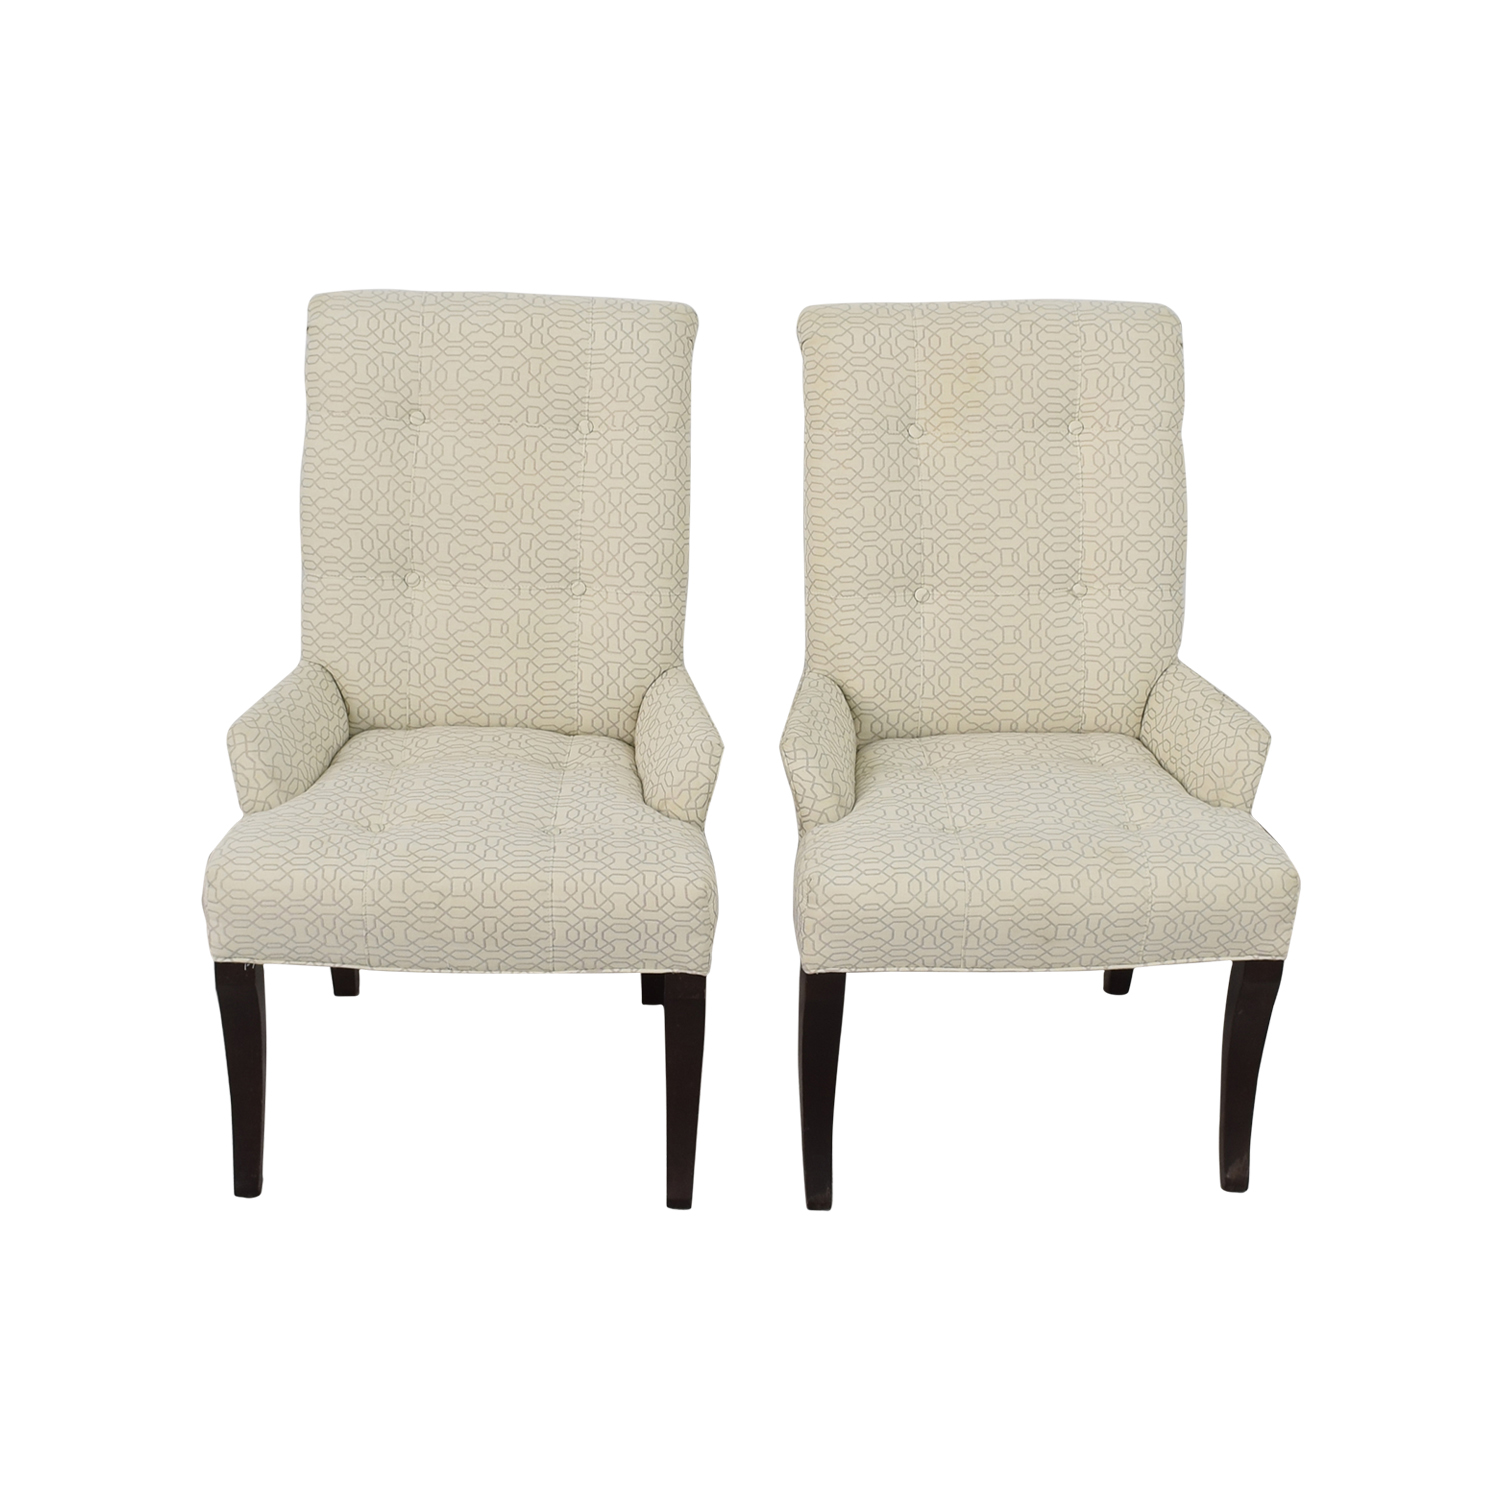 White Accent Chairs Used.75 Off Ethan Allen Ethan Allen Jaqueline White Accent Chair Chairs